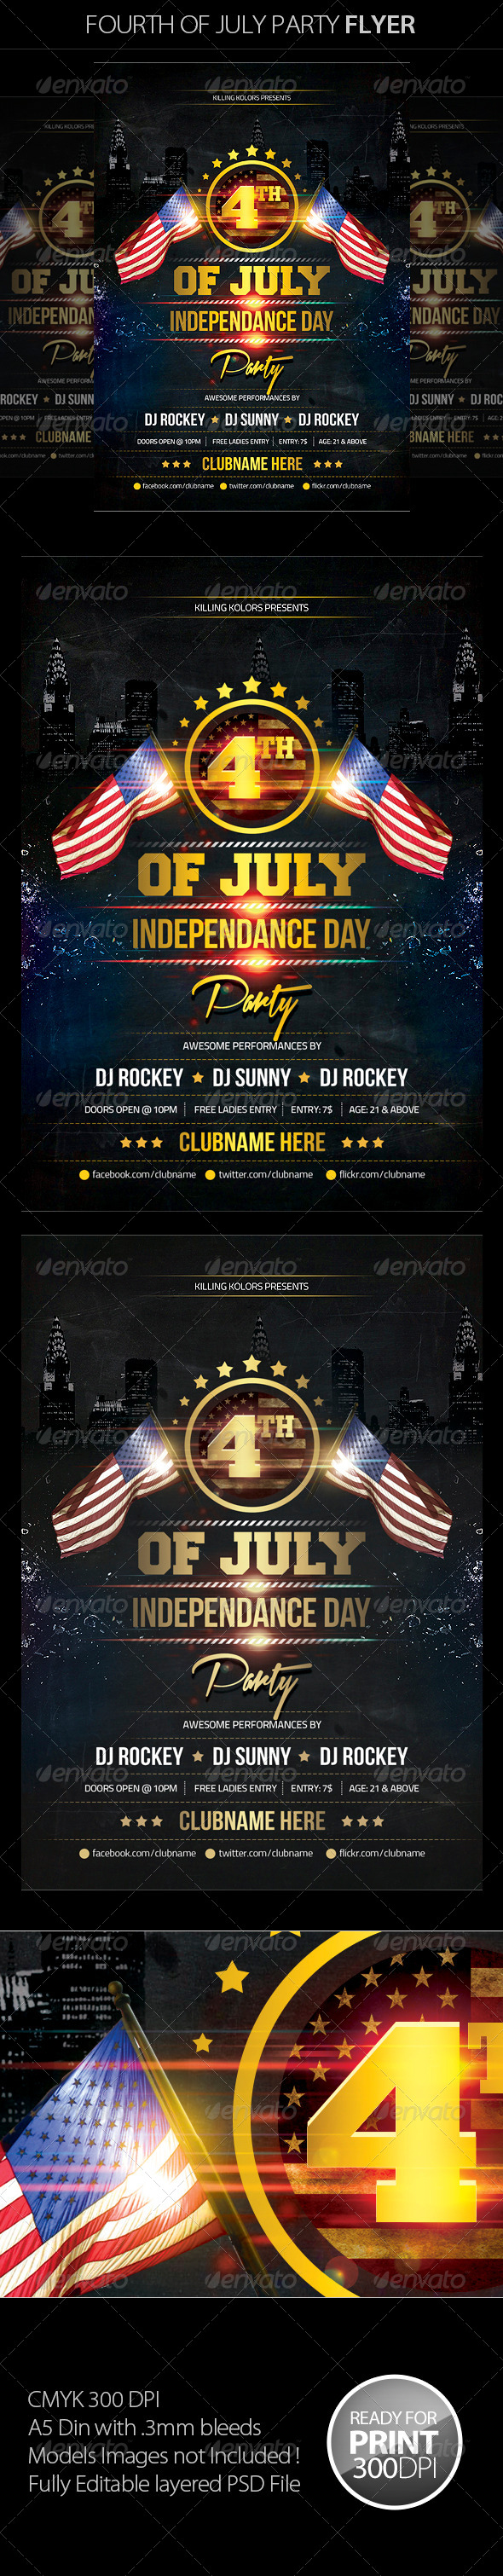 GraphicRiver Fourth of July Party Flyer 7964128